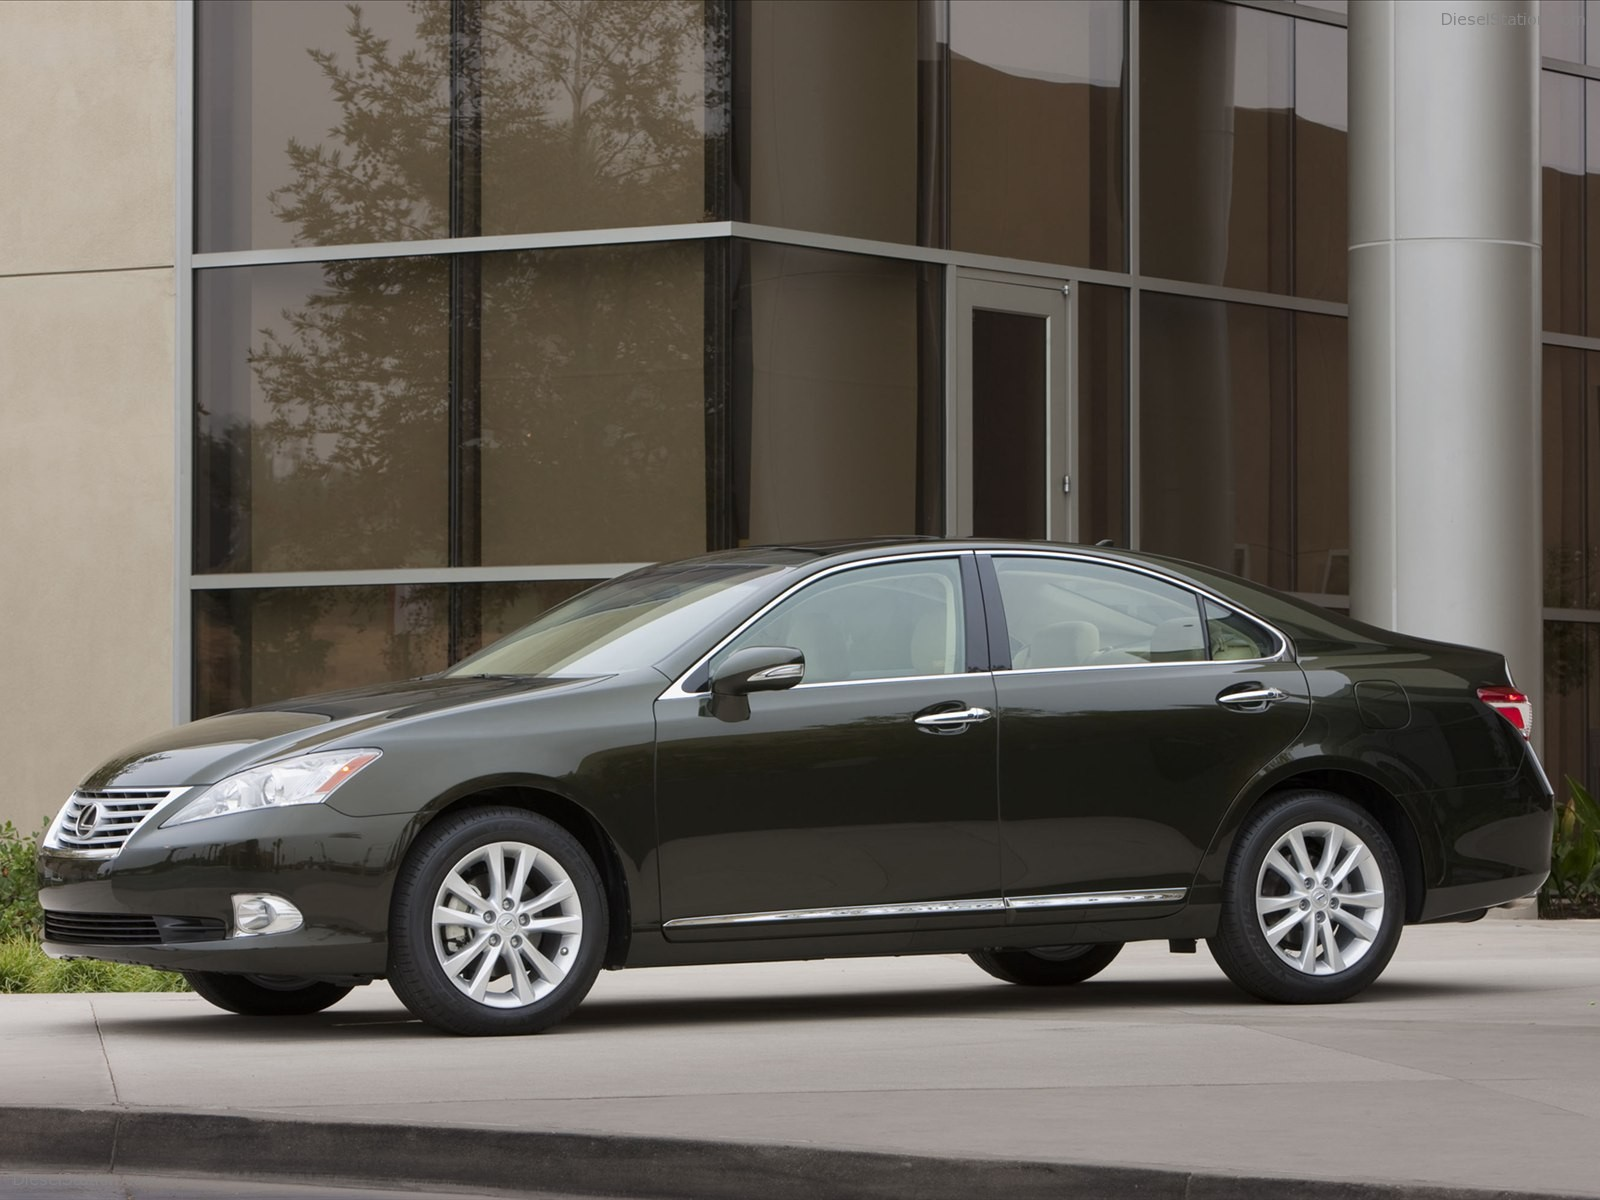 Lexus ES 350 2012 photo - 4